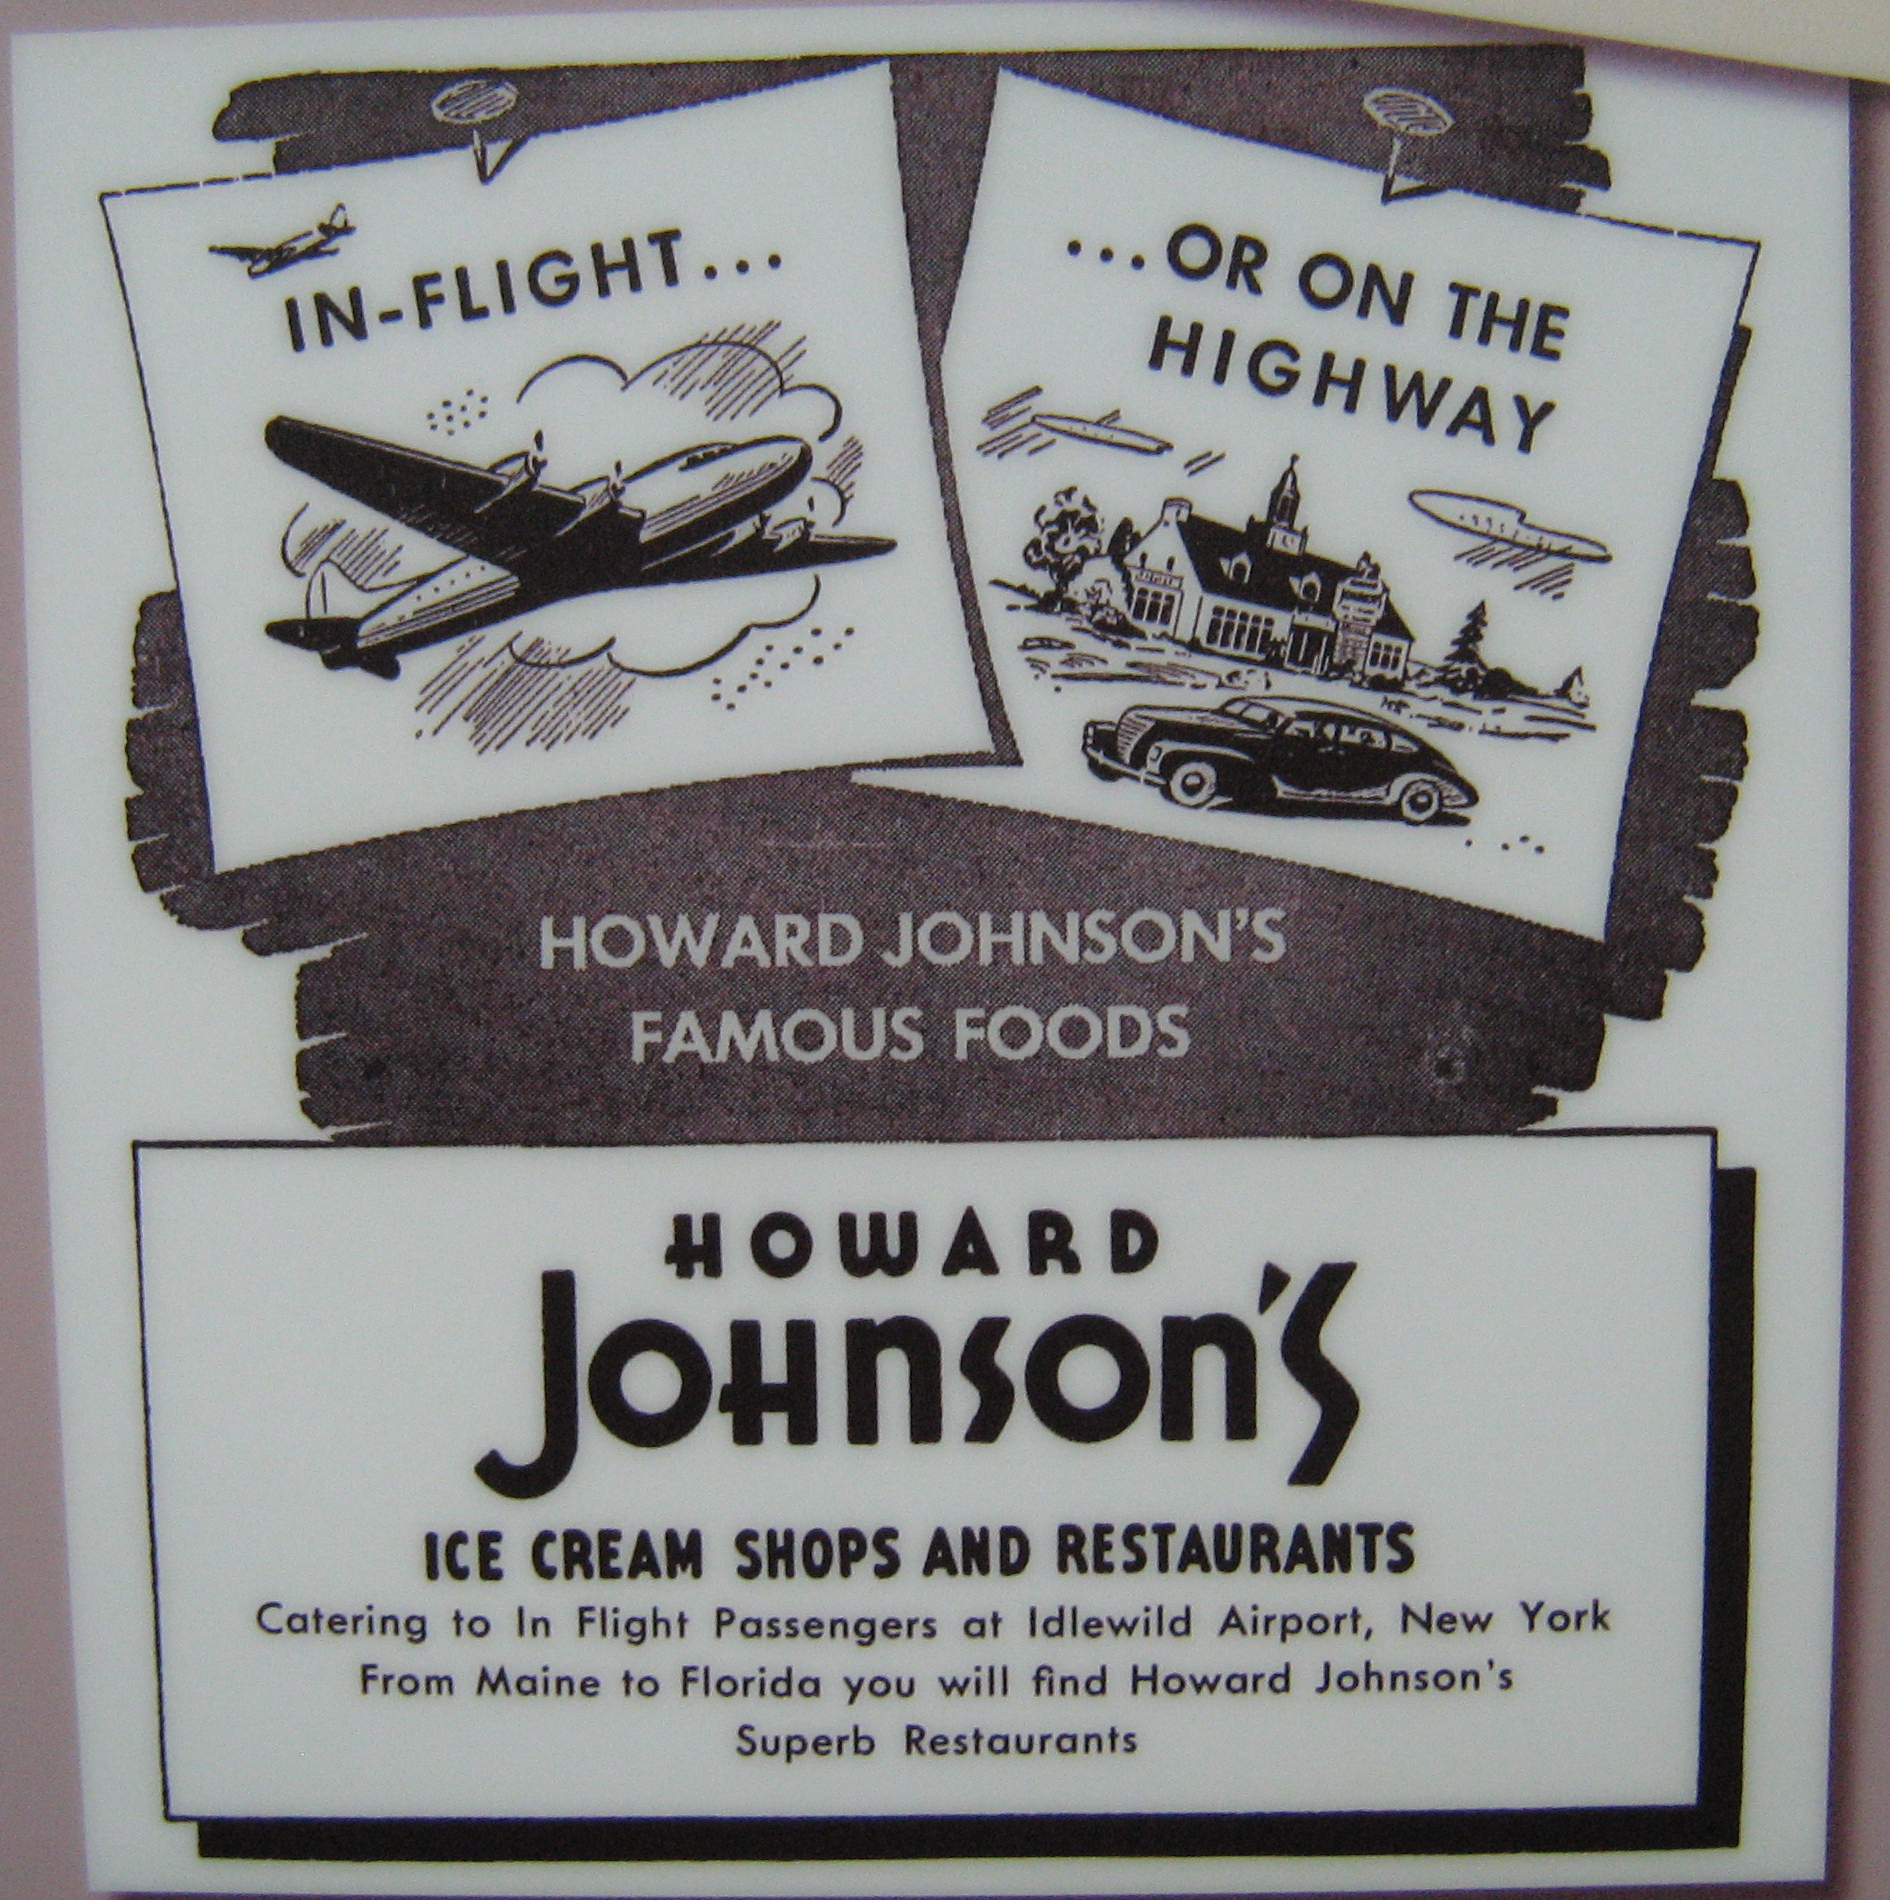 Howard_Johnson's_advertisement ...